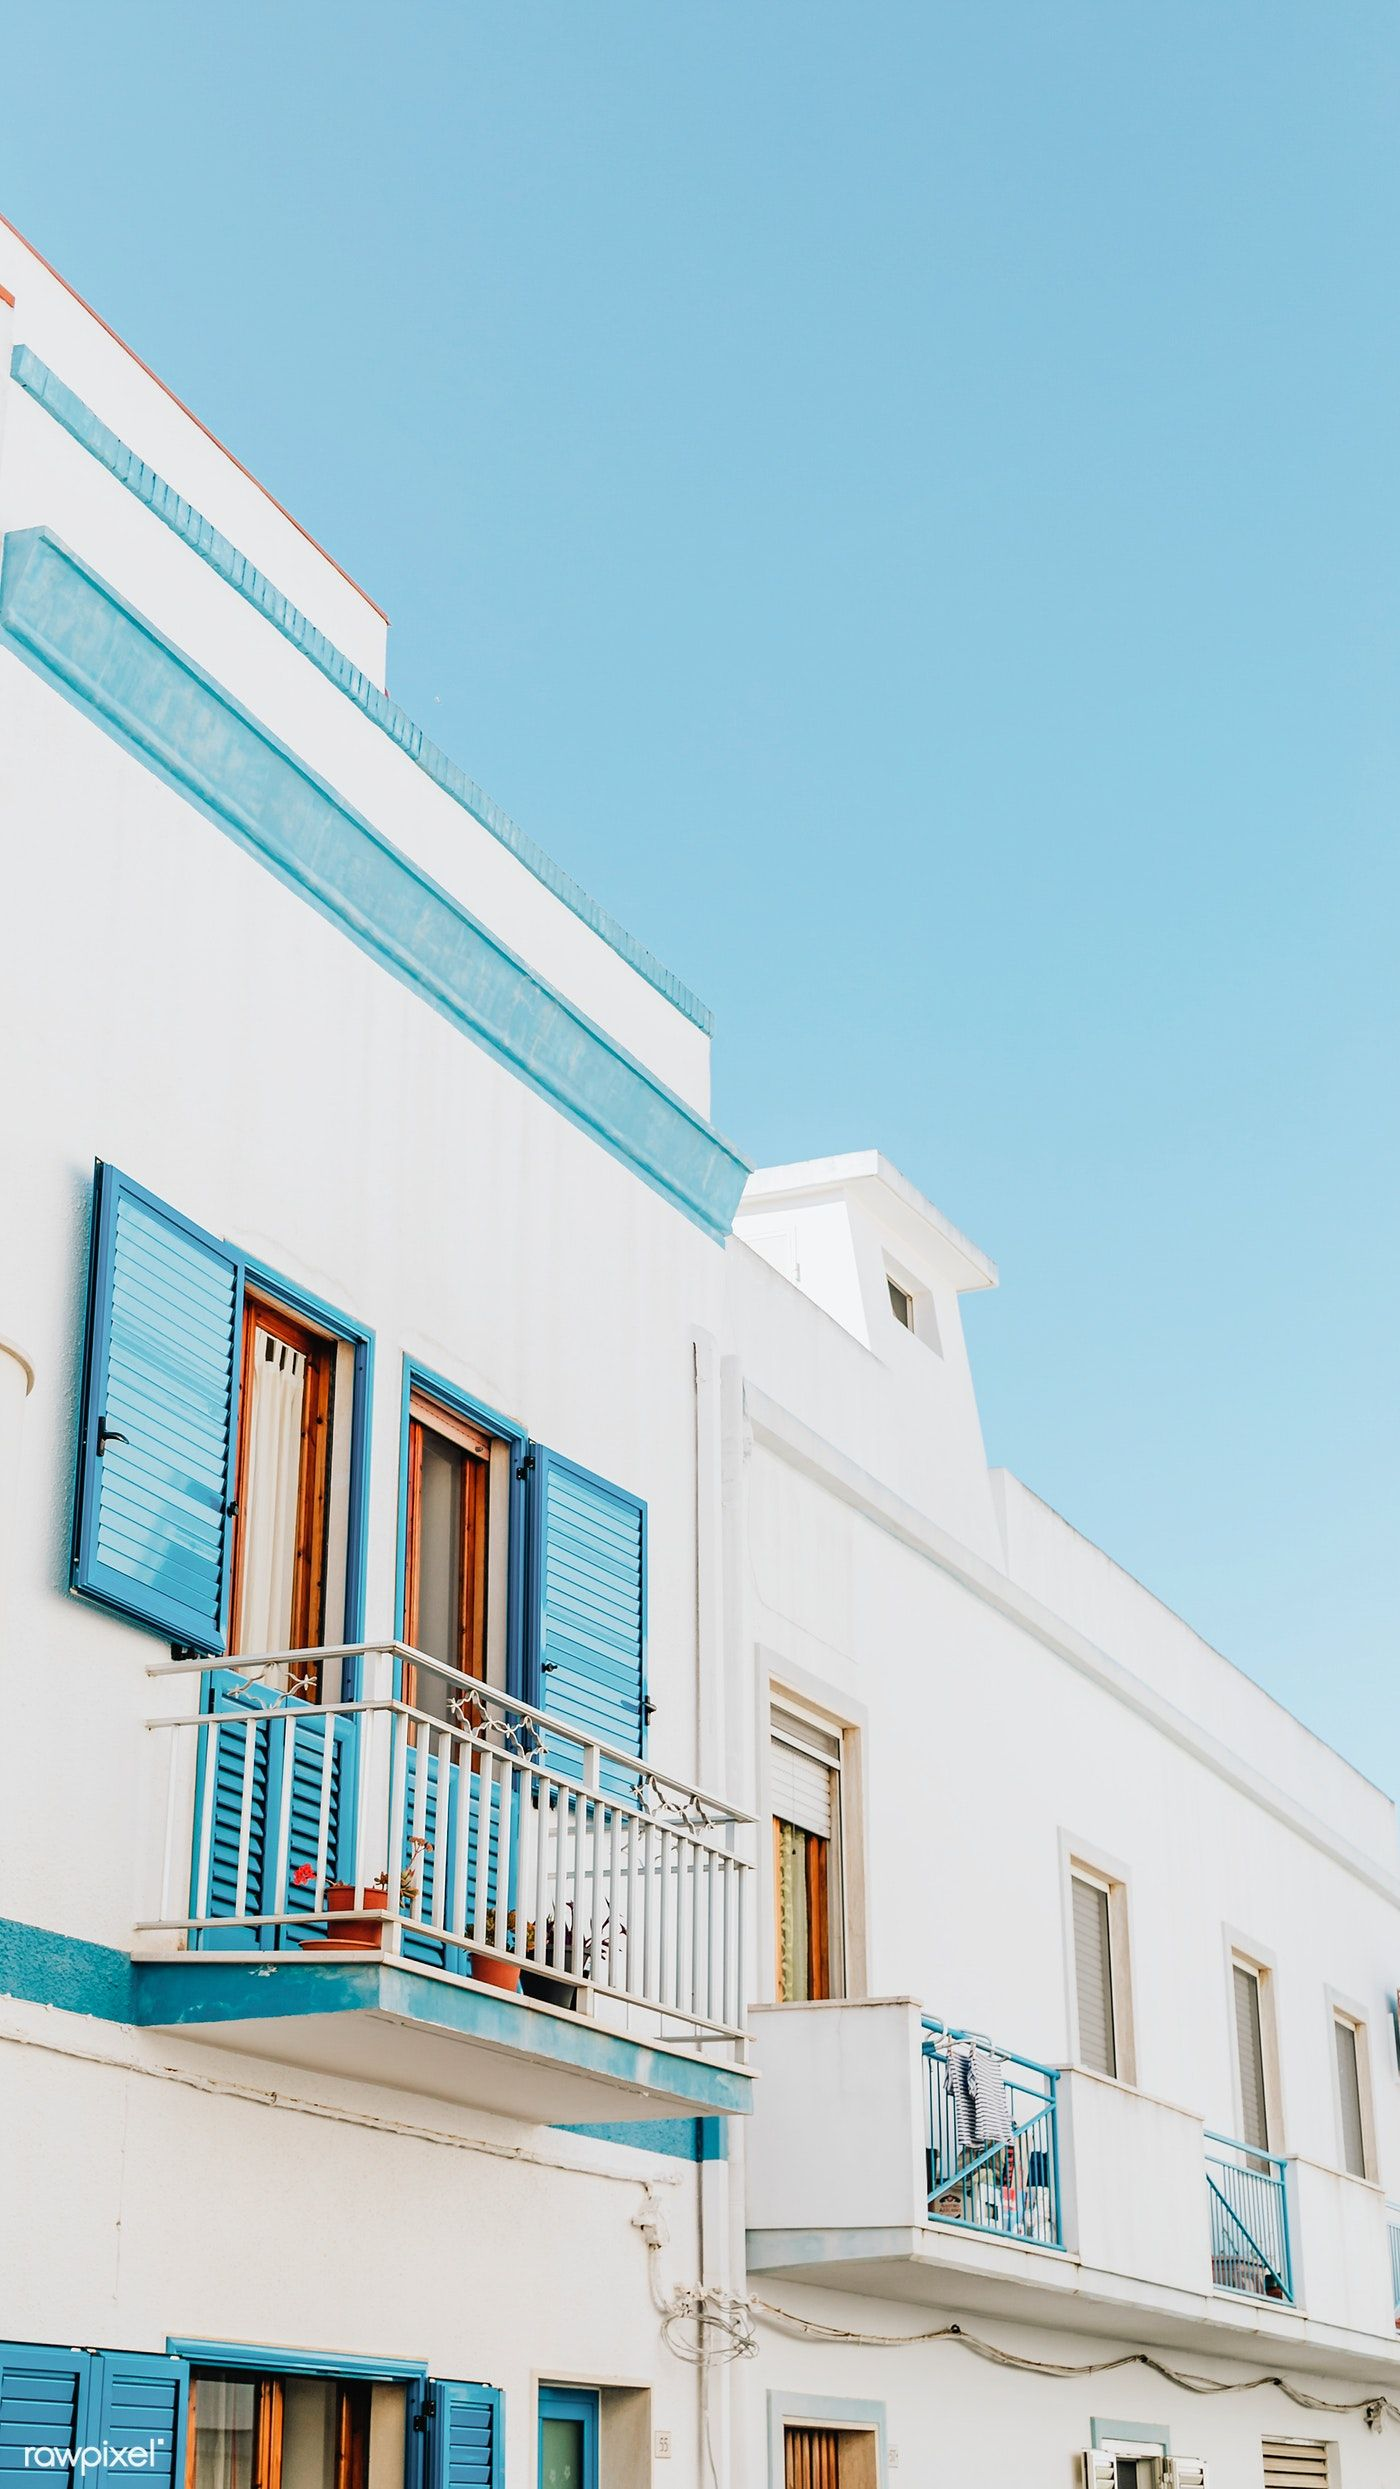 Download premium image of Old residential building in Sardinia, Italy